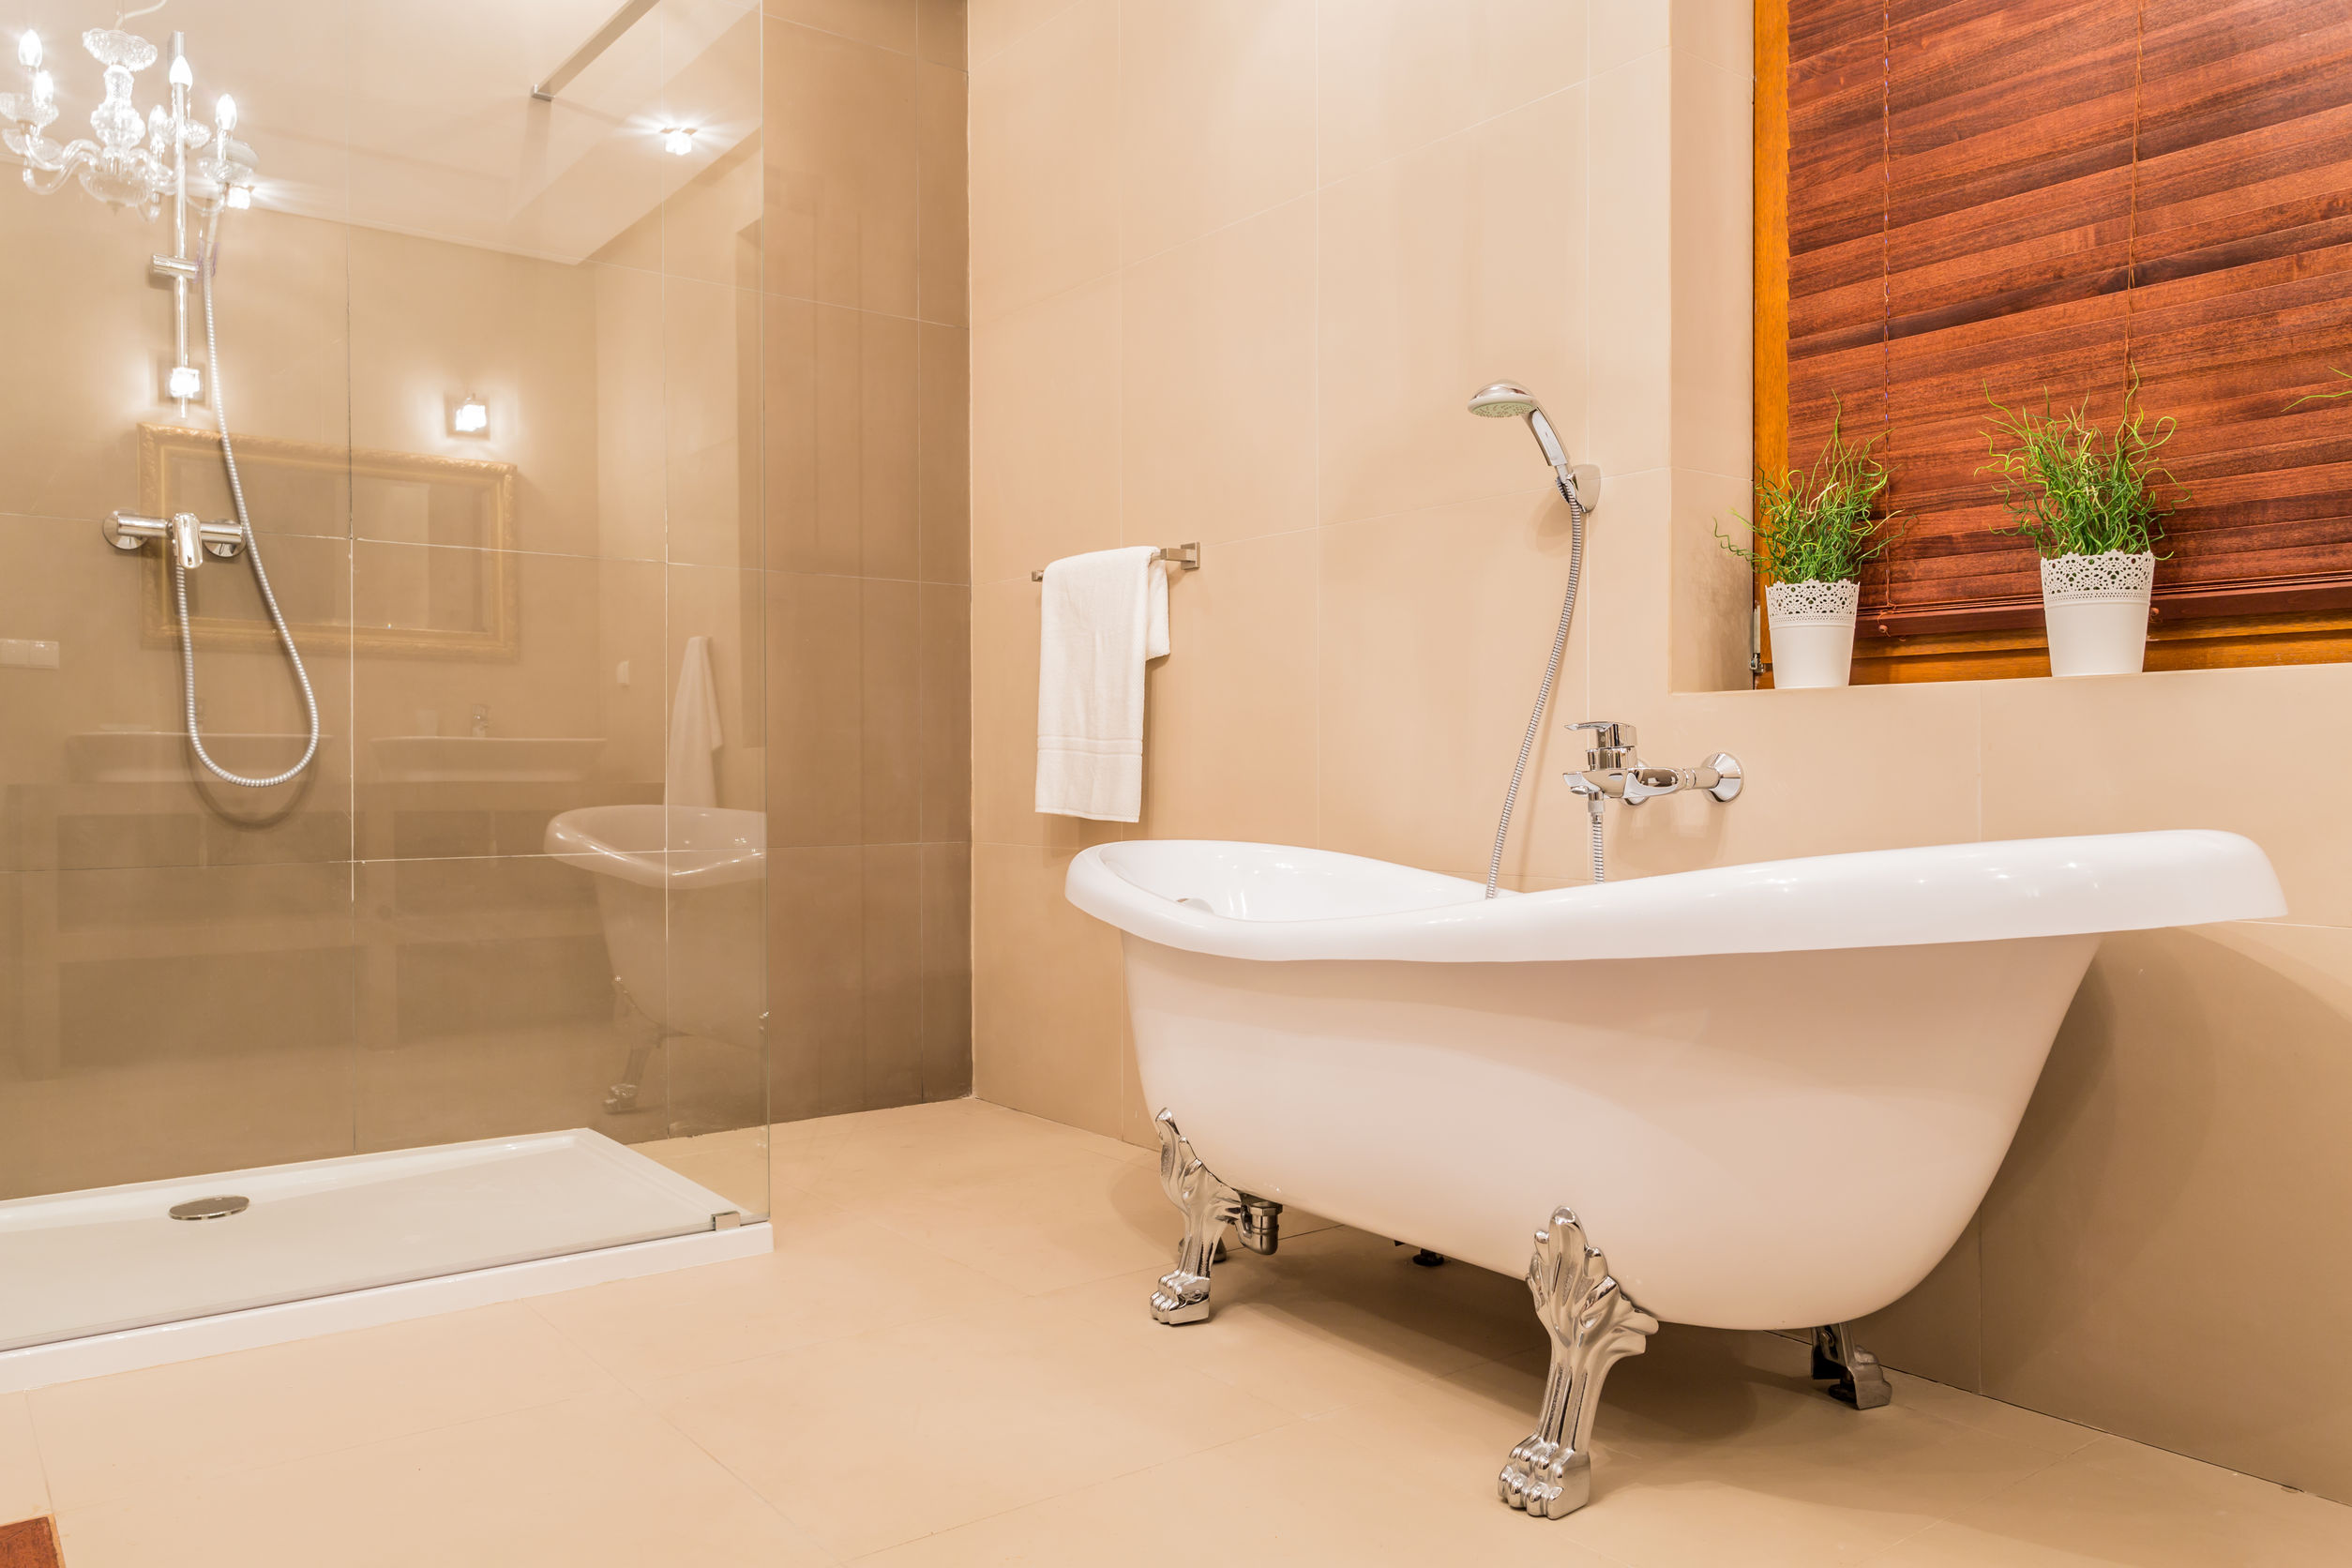 Bathroom Remodeling Contractors San Jose CA EOL Builders - Bathroom remodel process